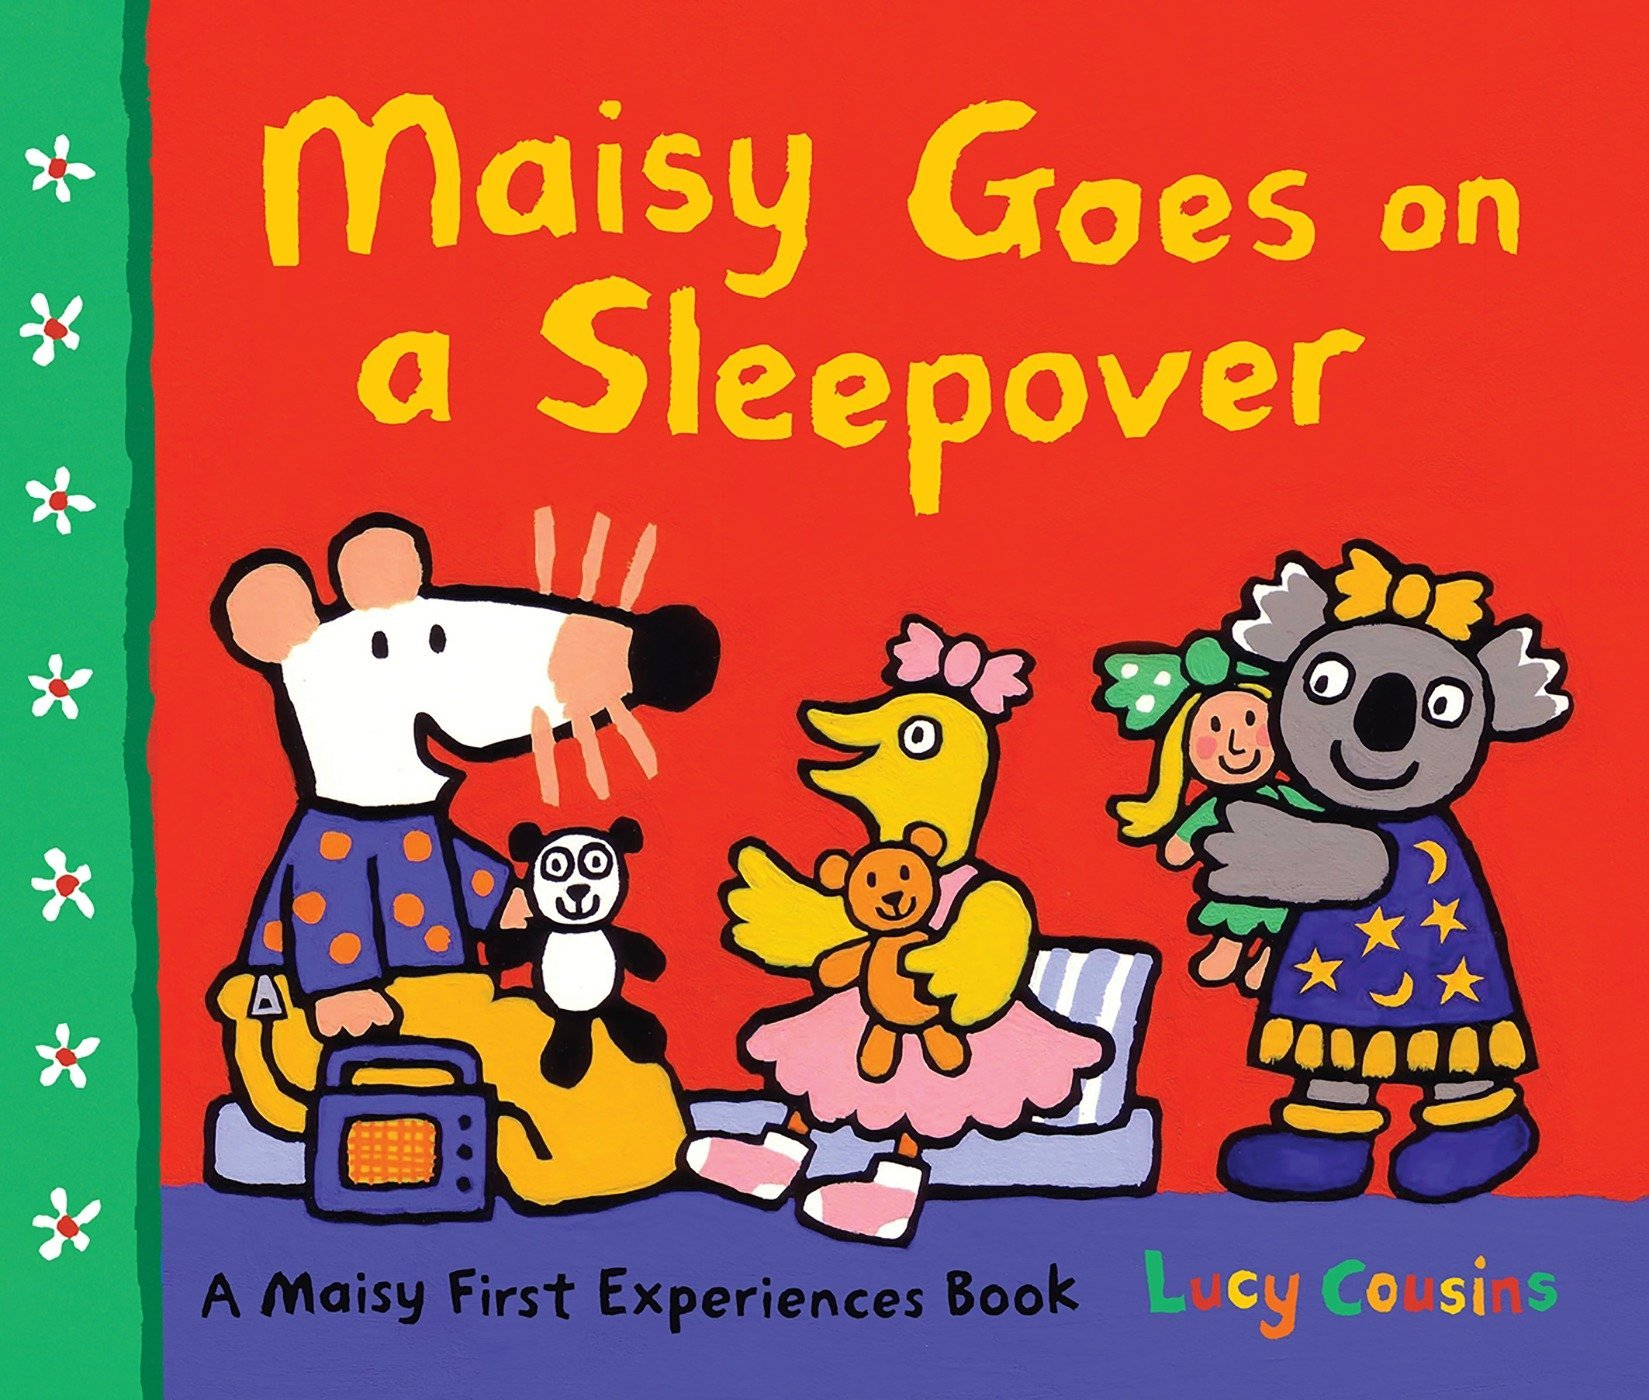 maisy goes on a sleepover a maisy first experience book lucy